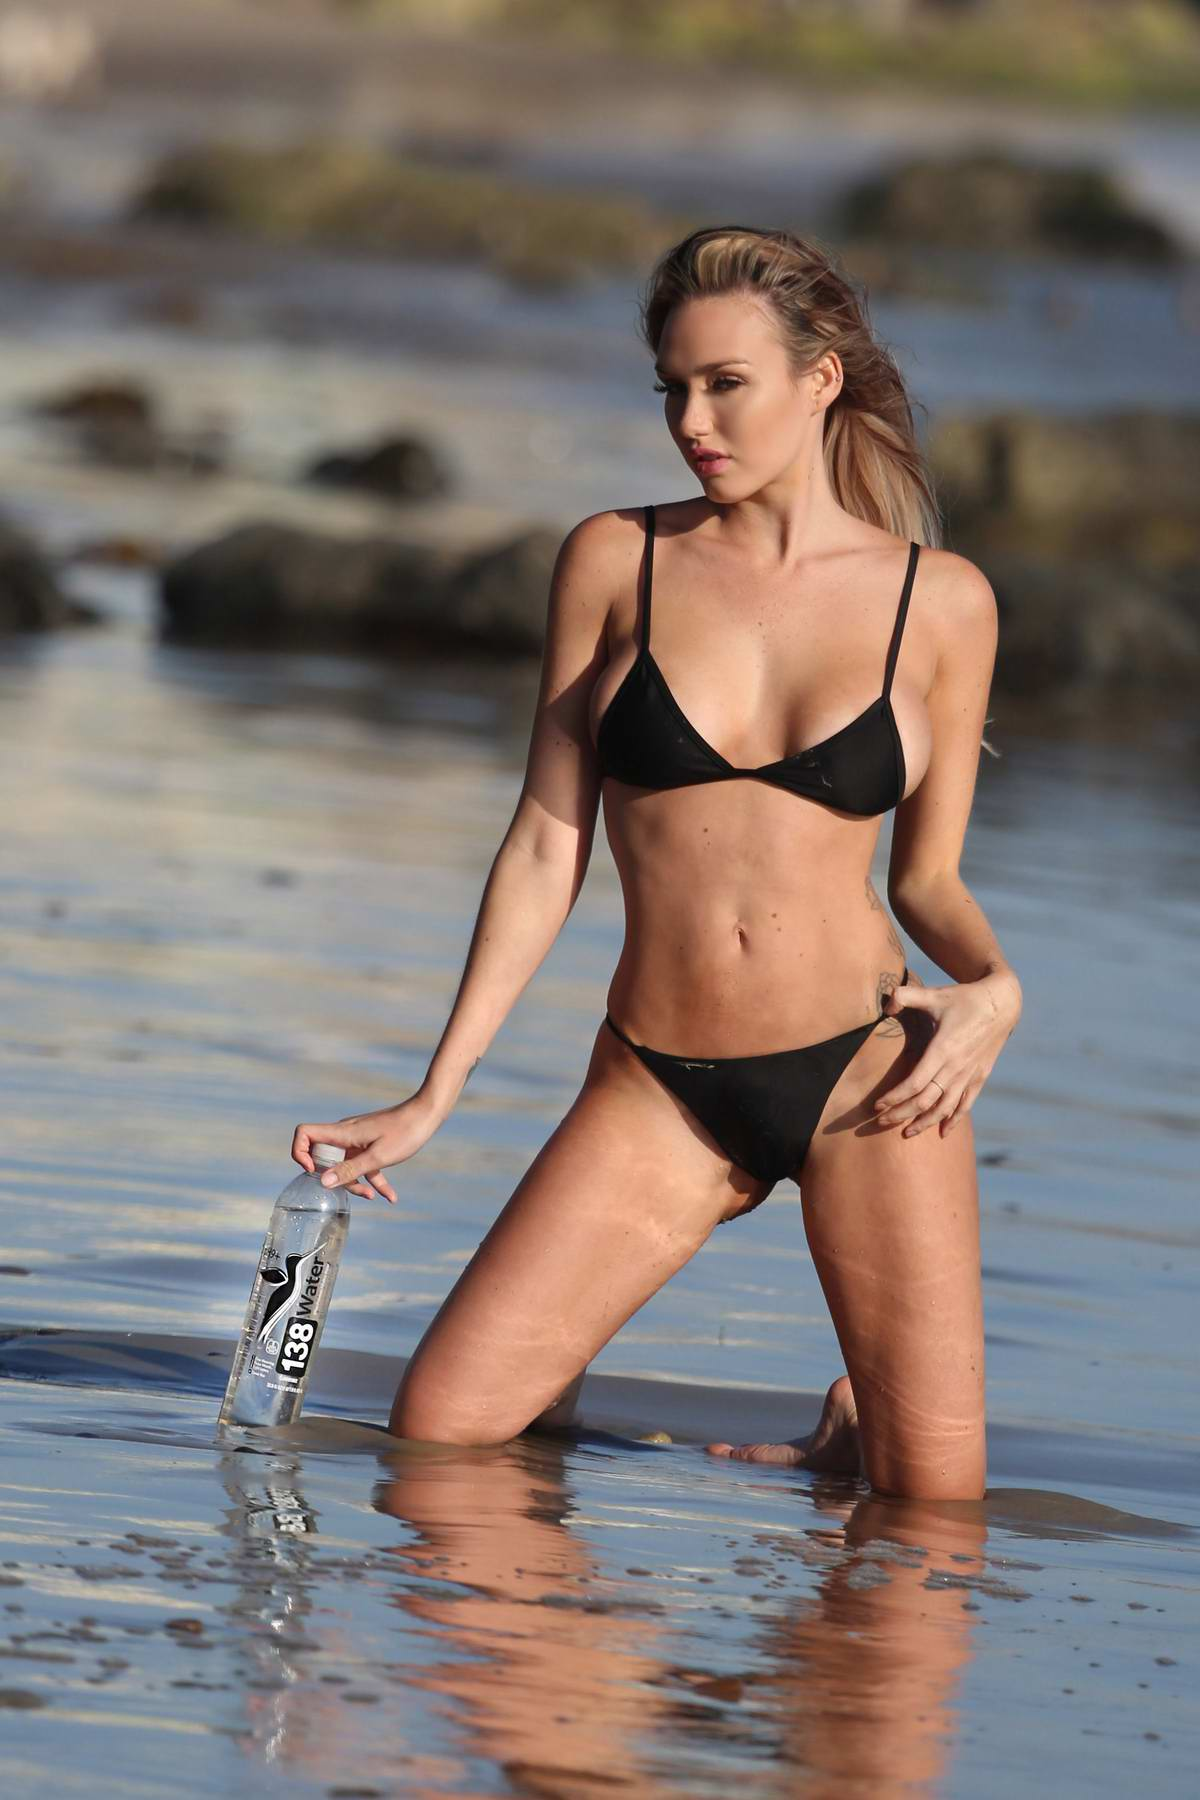 Jules Liesl wearing a black bikini on the set of a 138 Water photoshoot in Malibu, California